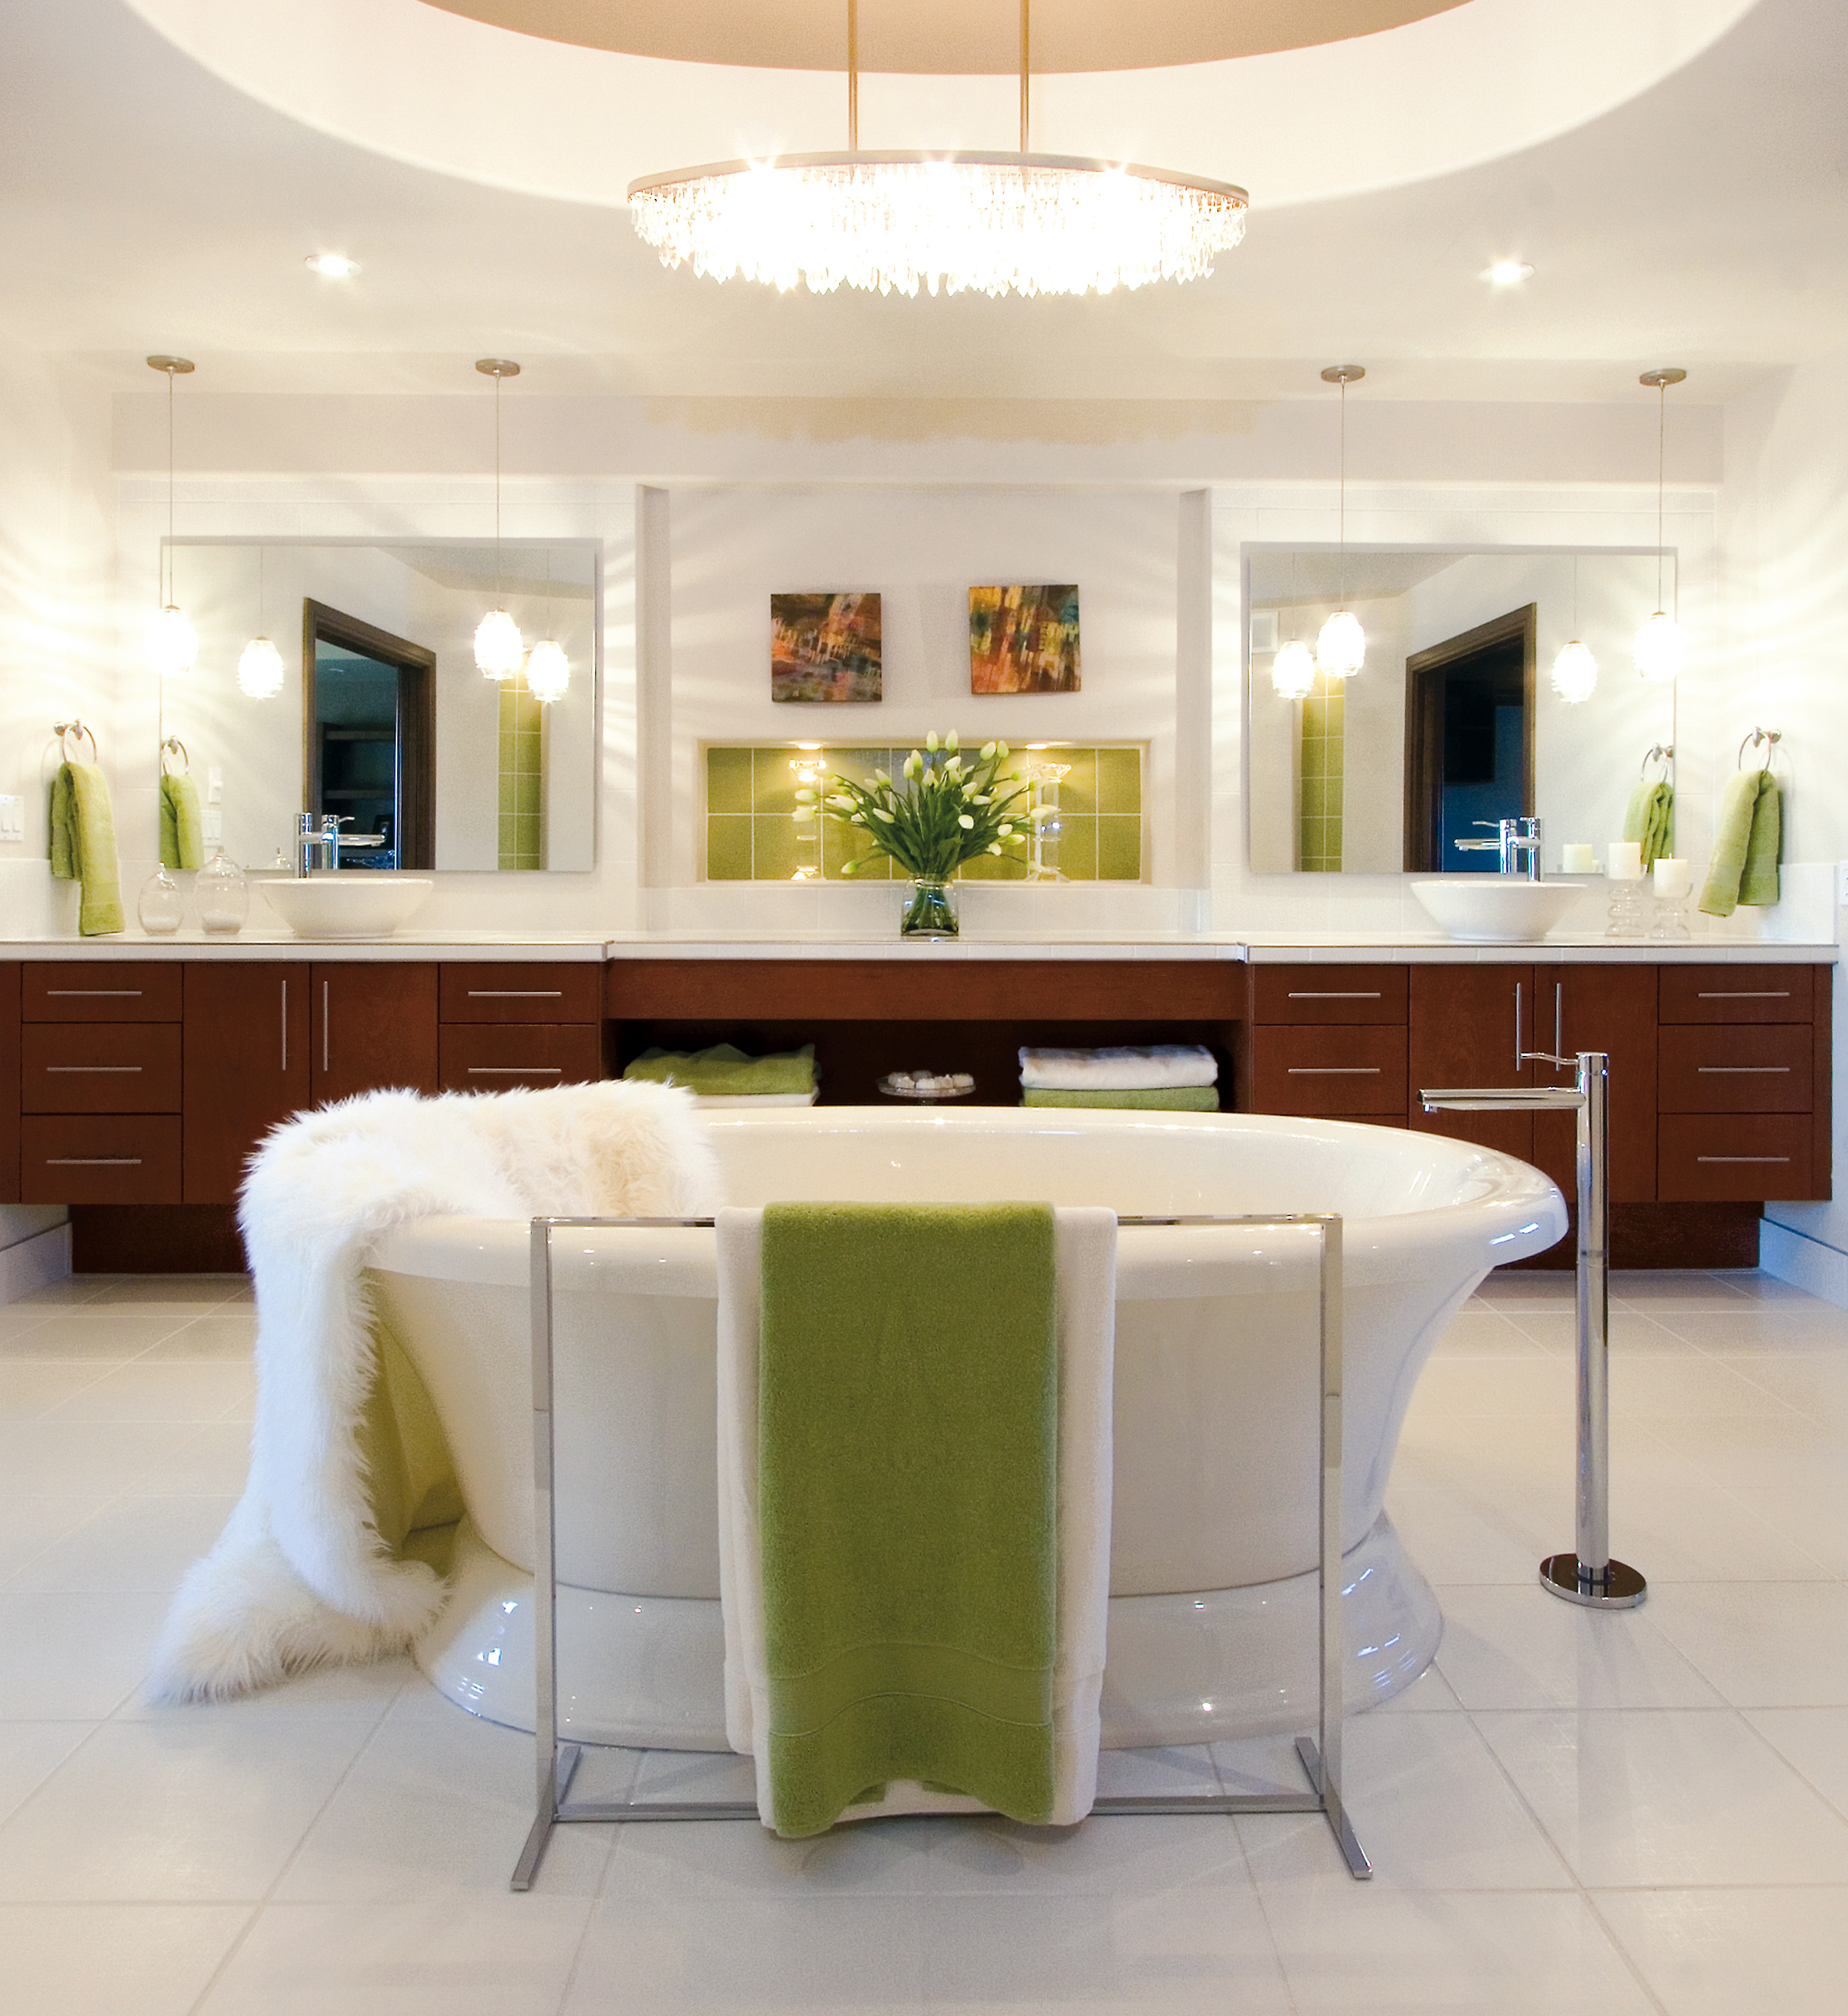 Kitchen Craft Cabinet Sizes: Luxury In Every Size